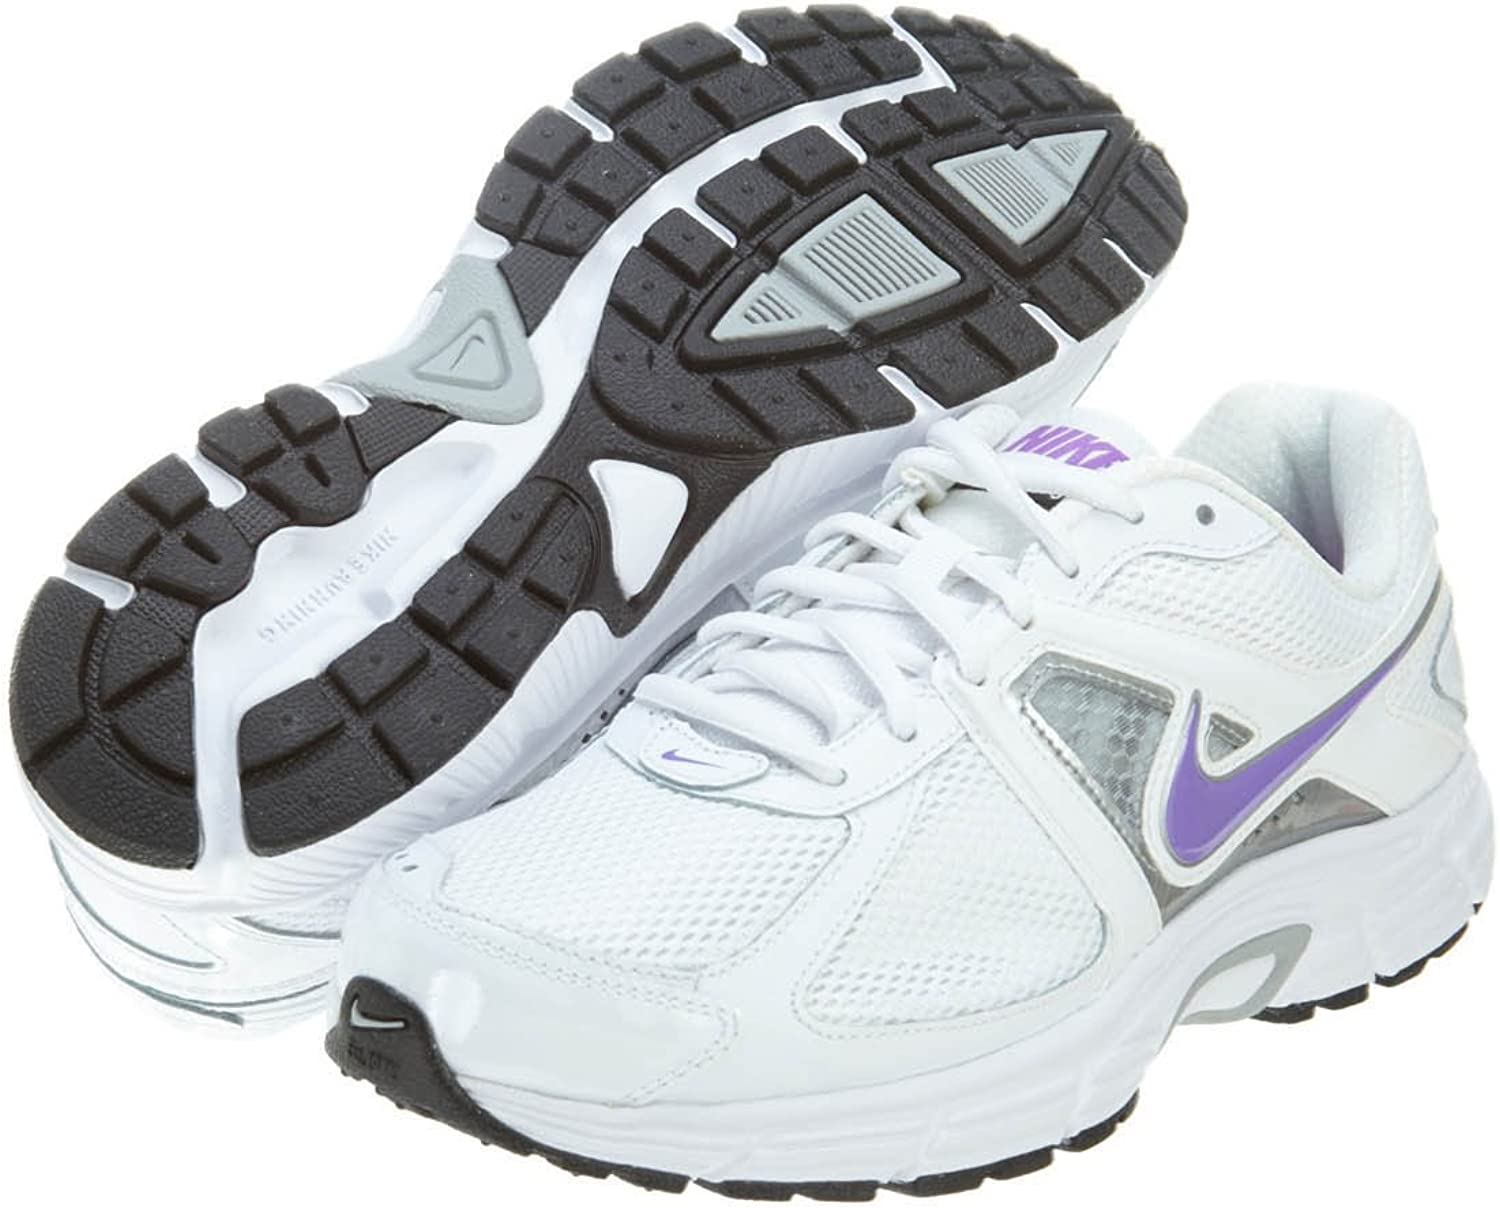 Ventilación sonido odio  Nike Dart 9 Womens White Wide Mesh Running Shoes Size 6.5 UK UK 6.5:  Amazon.co.uk: Shoes & Bags